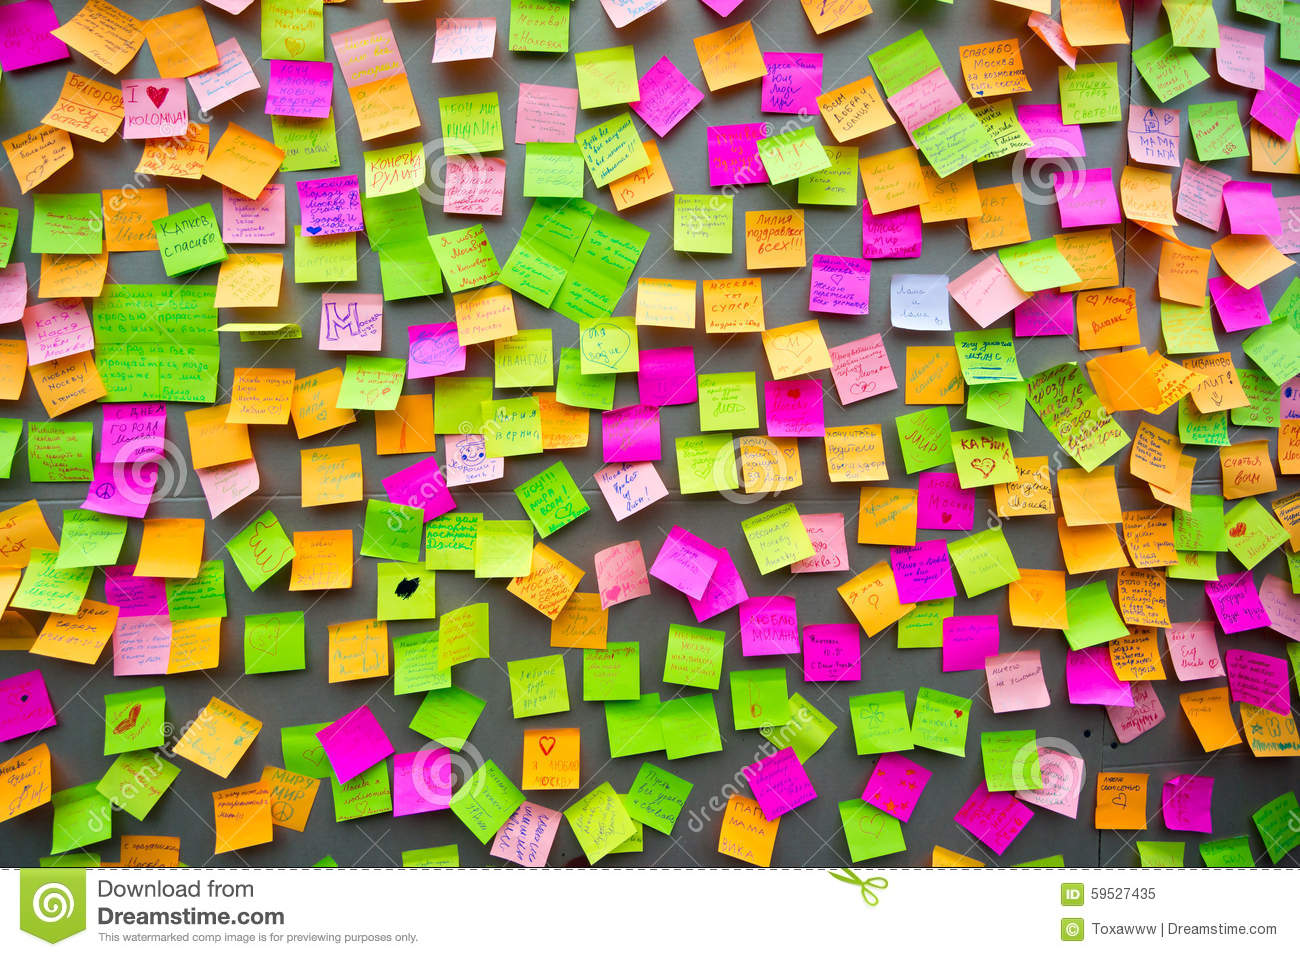 how to make different colored sticky notes on background